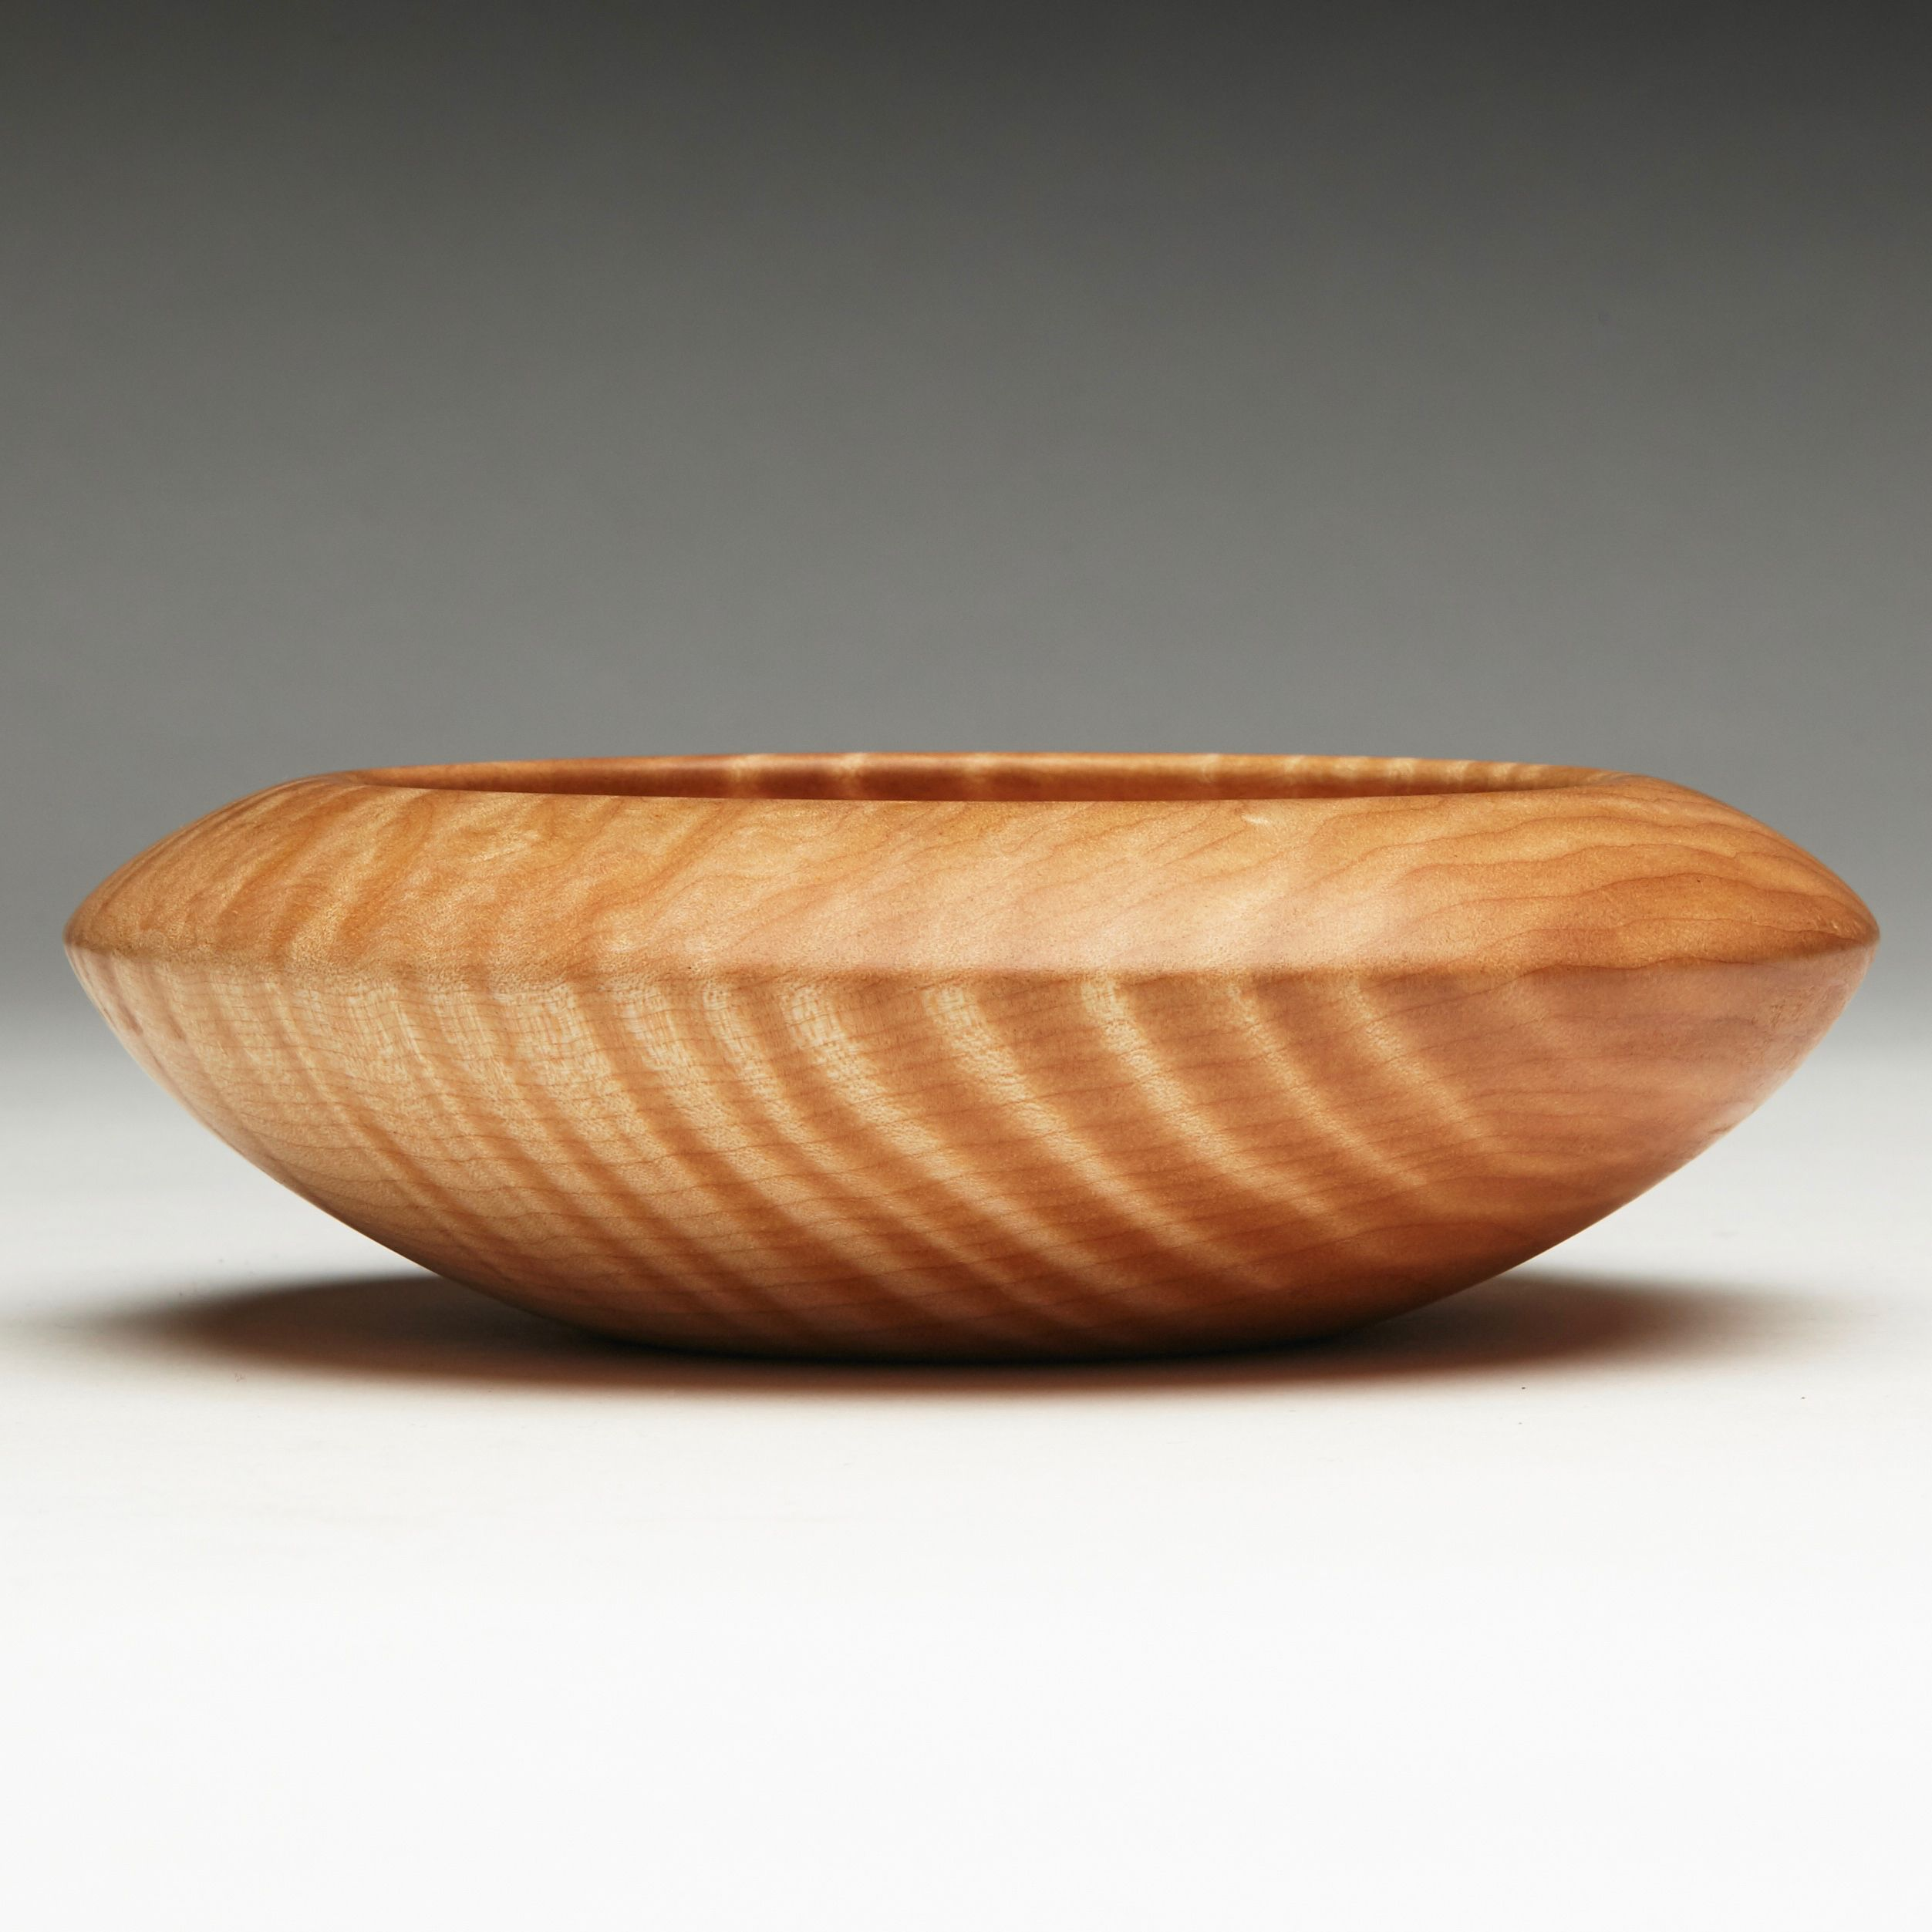 Hand turned flame quilted maple vessel hand turned wood bowls contemporary wood furnishings and accessories with specialty in hand turned wood bowls and vases and wood serving boards and wood cutting boards reviewsmspy